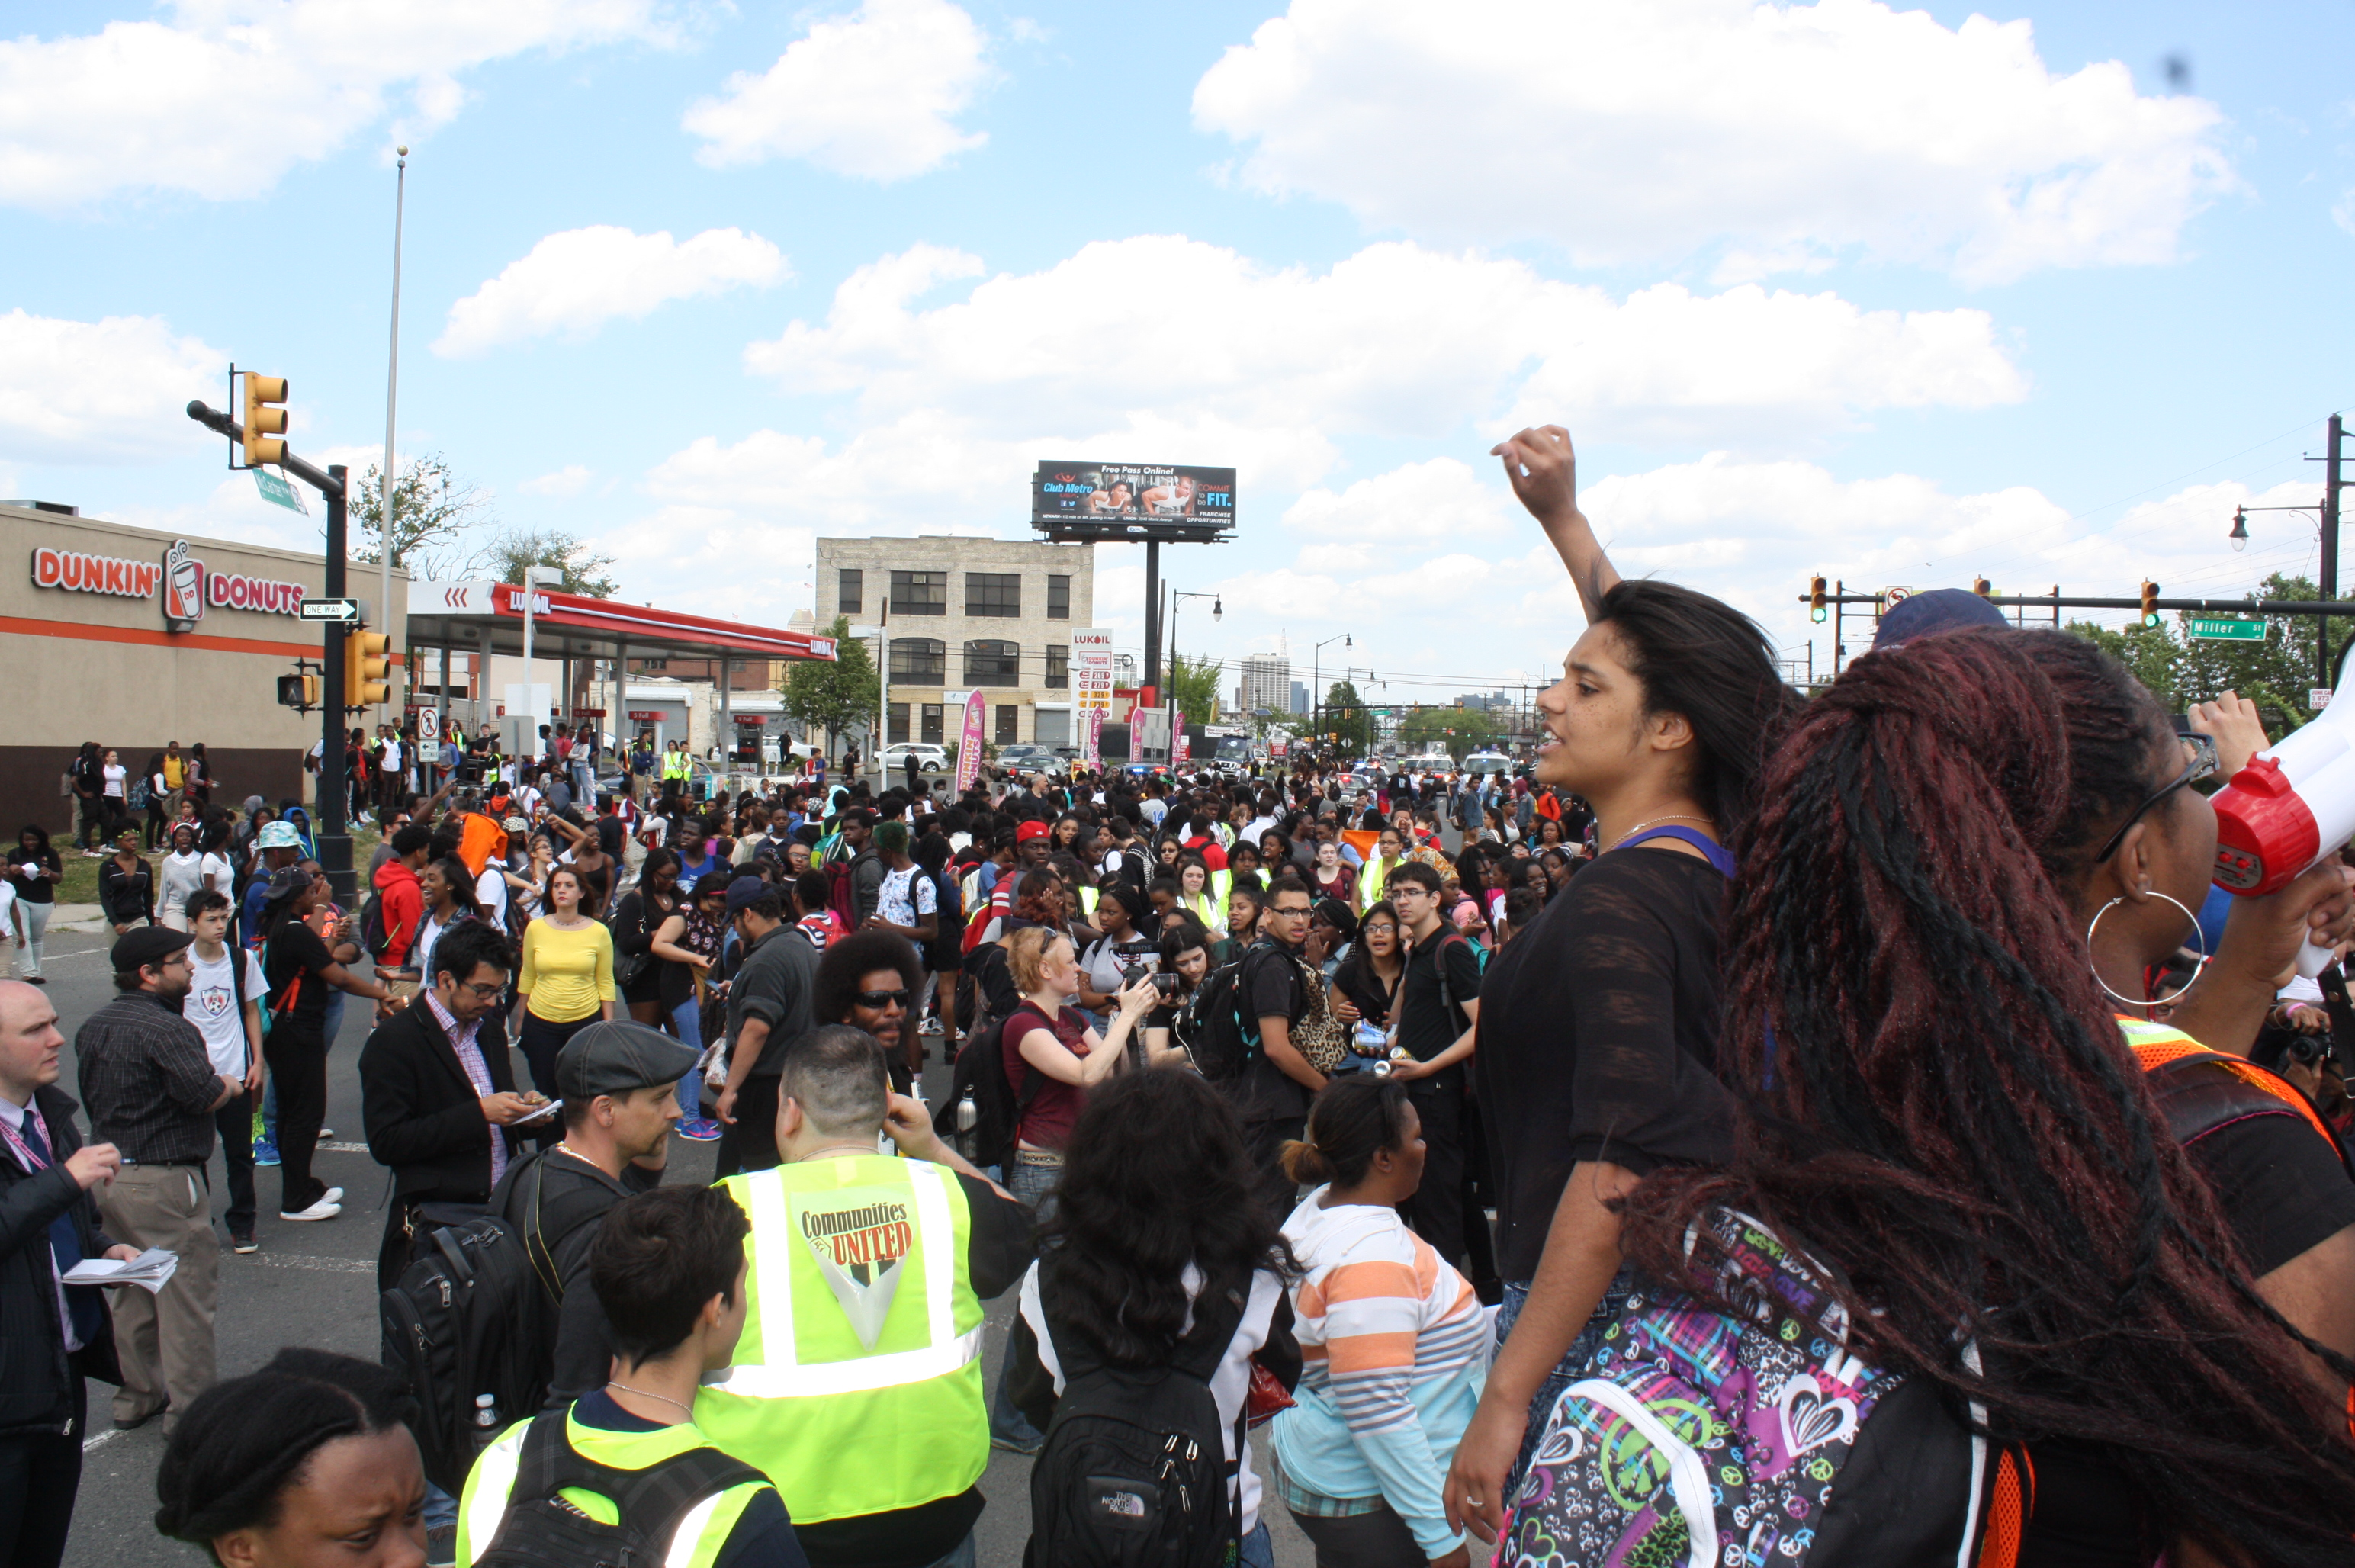 Crowds like this one last May could have sunk Christie--instead Christie got peace and Newark's charters got a future.